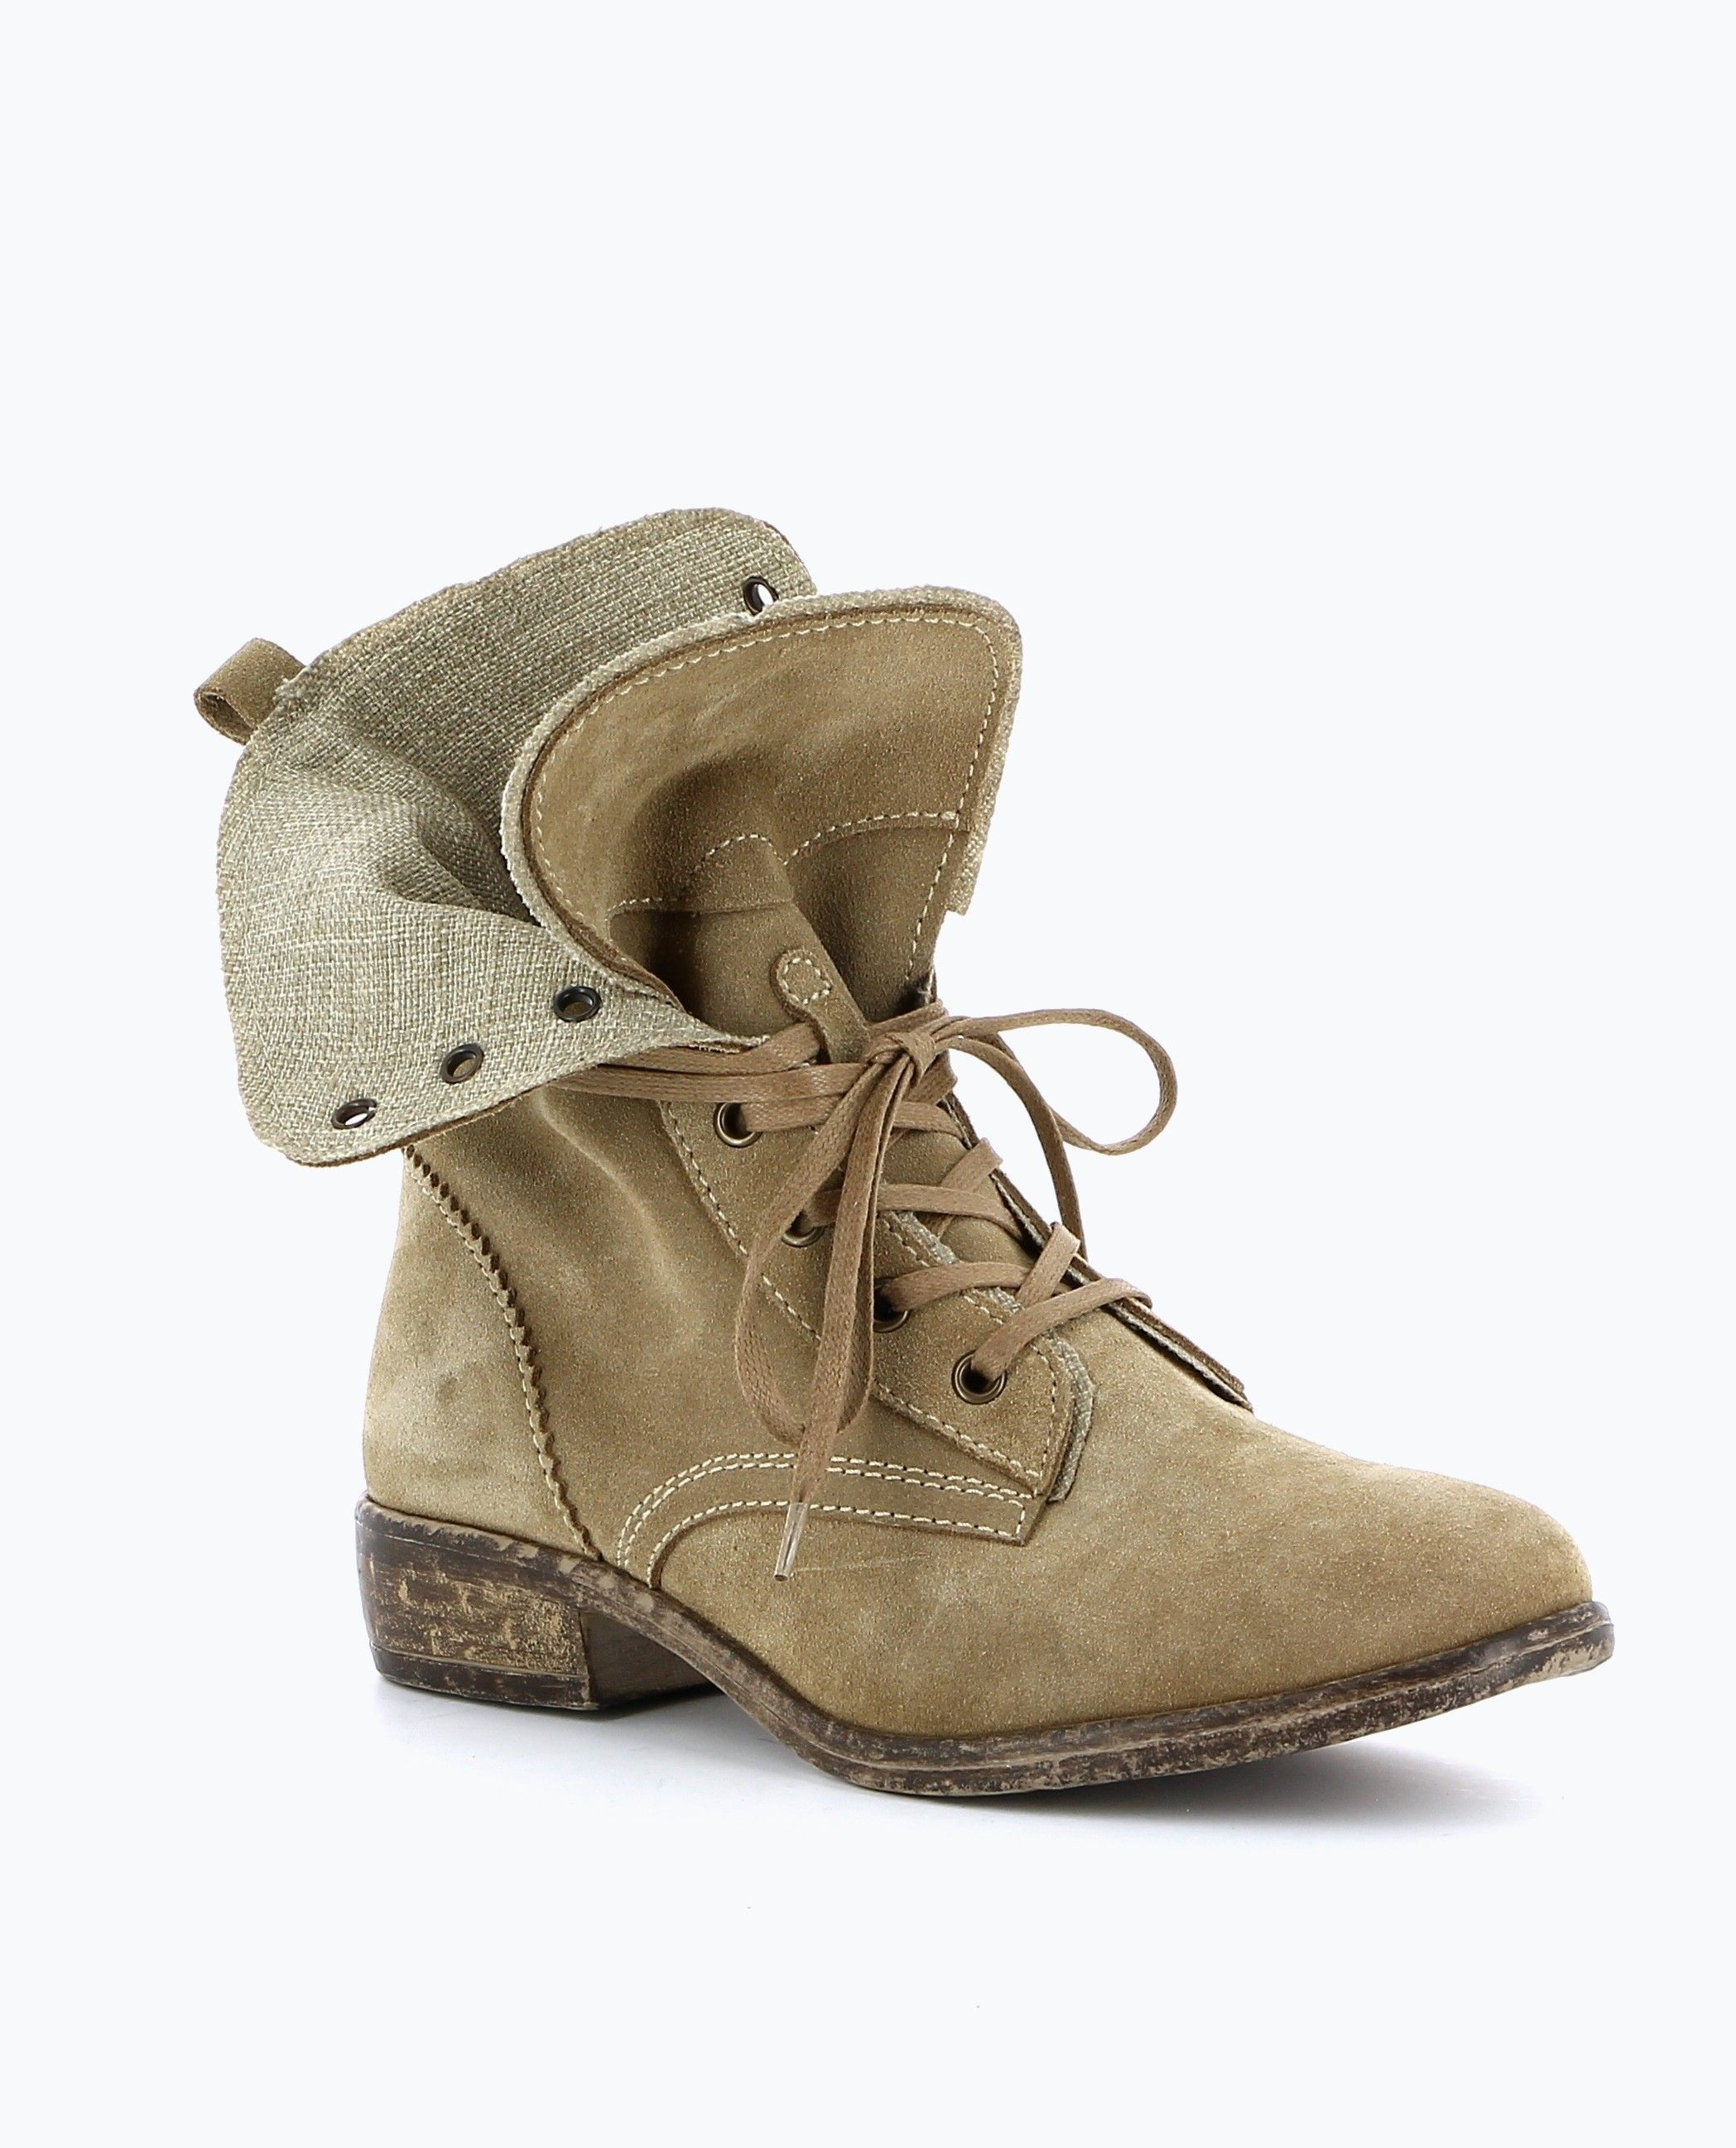 088f79f889db1e BOOTS LACETS CROÛTE DE CUIR - FEMME | Texto | SHOeS | Oxford shoes ...